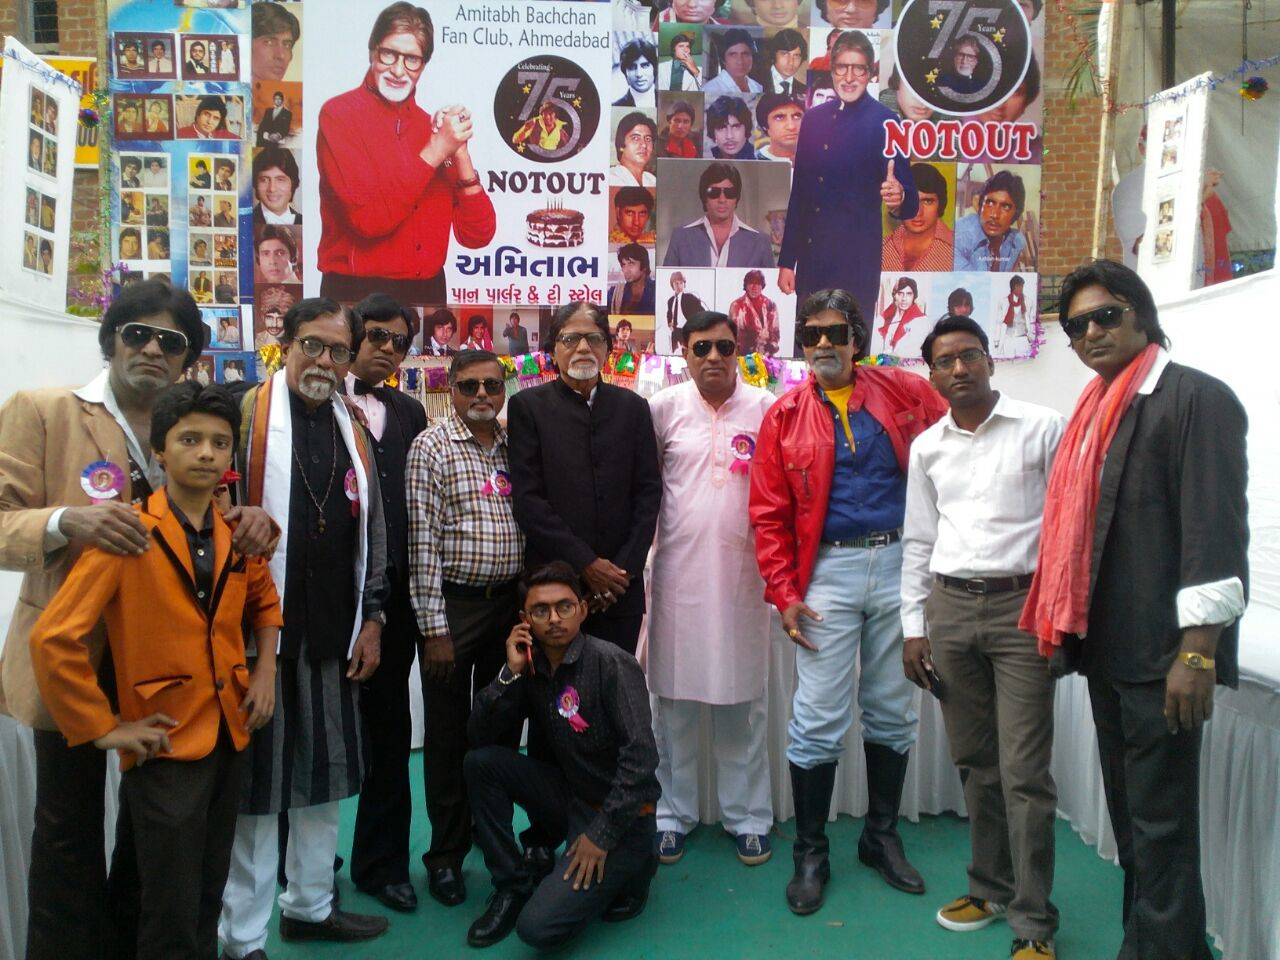 Fans in Ahmedabad